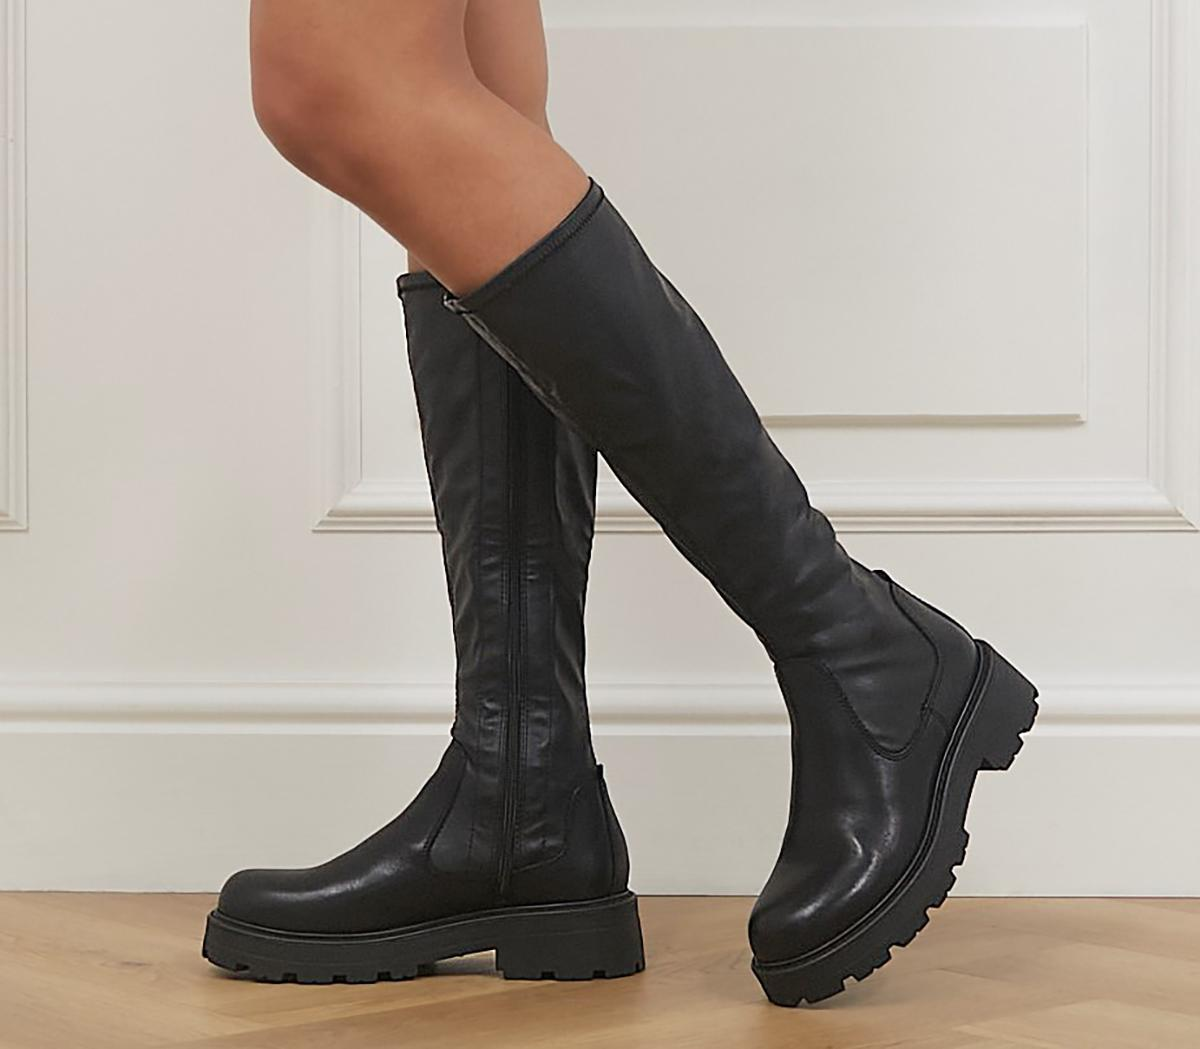 Cosmo 2.0 Stretch Boots